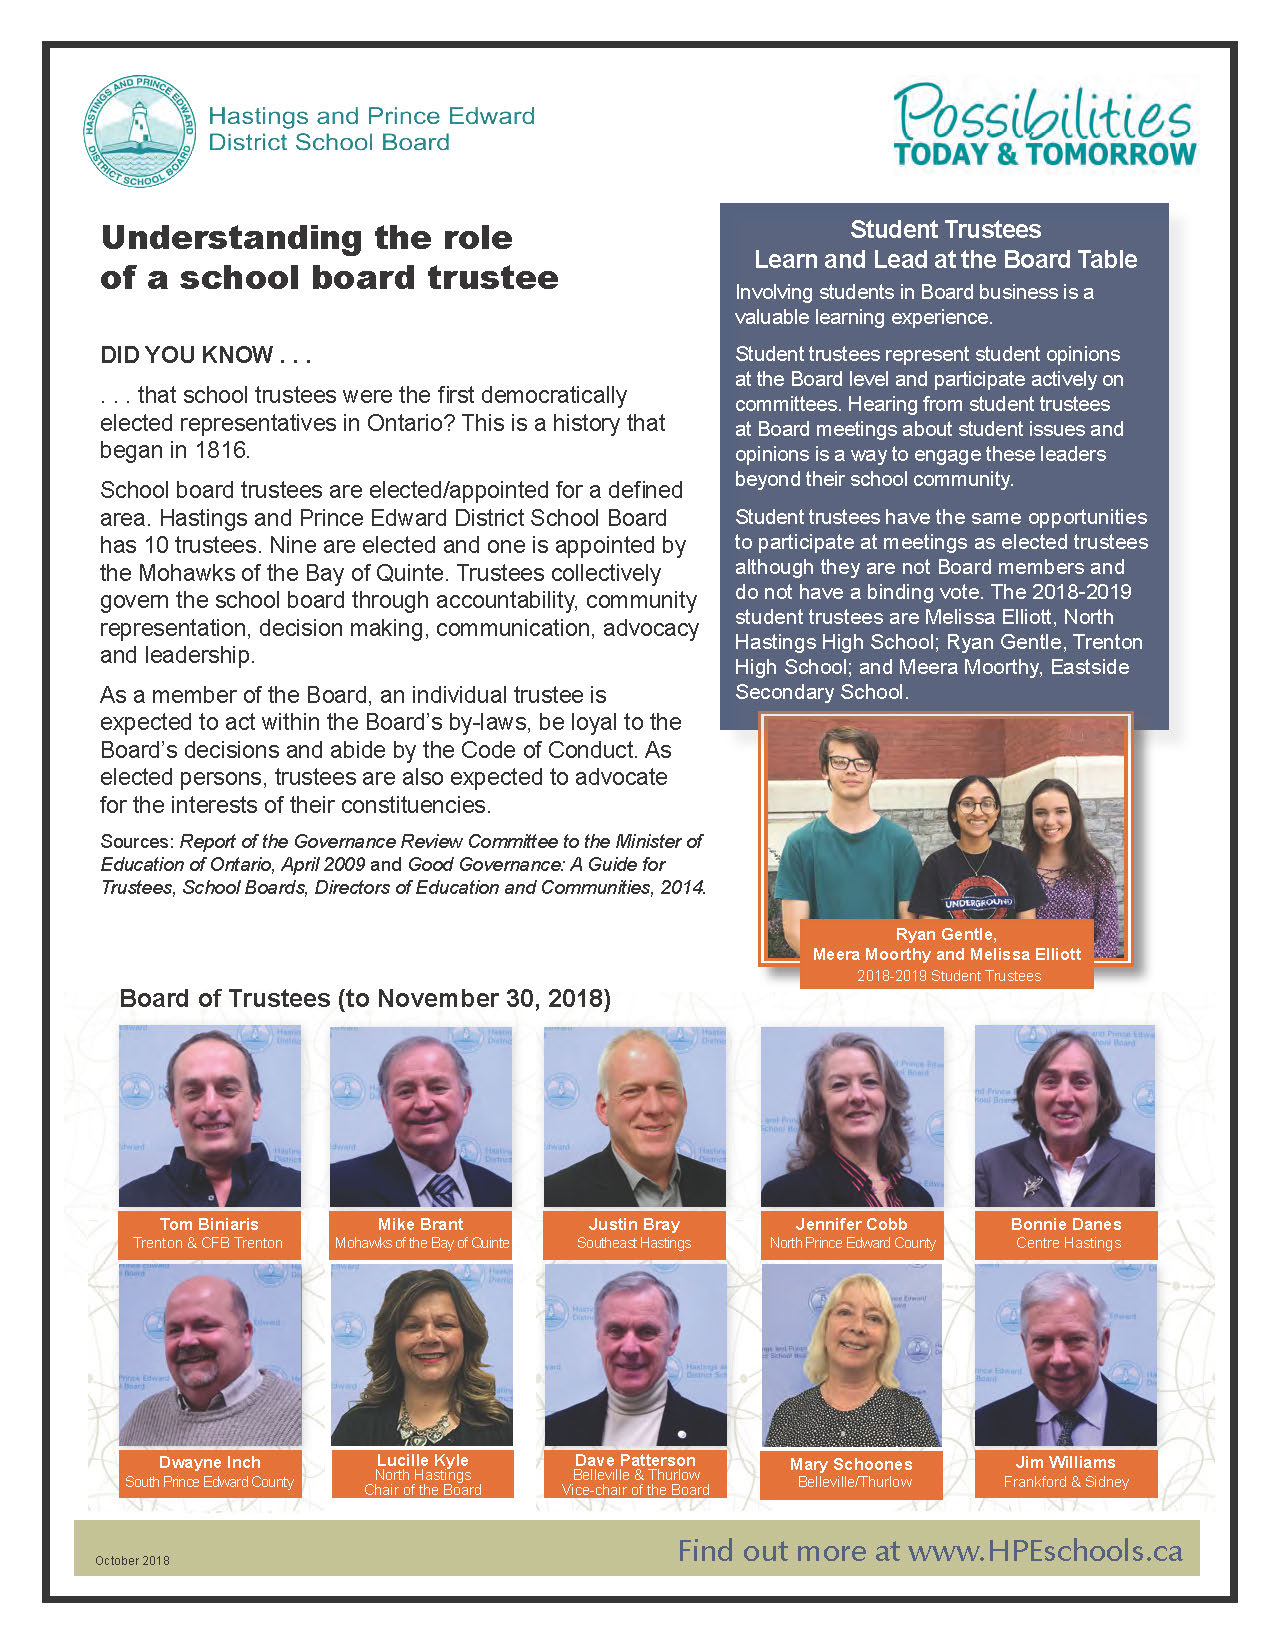 Understanding the role of a school board trustee, June 2018